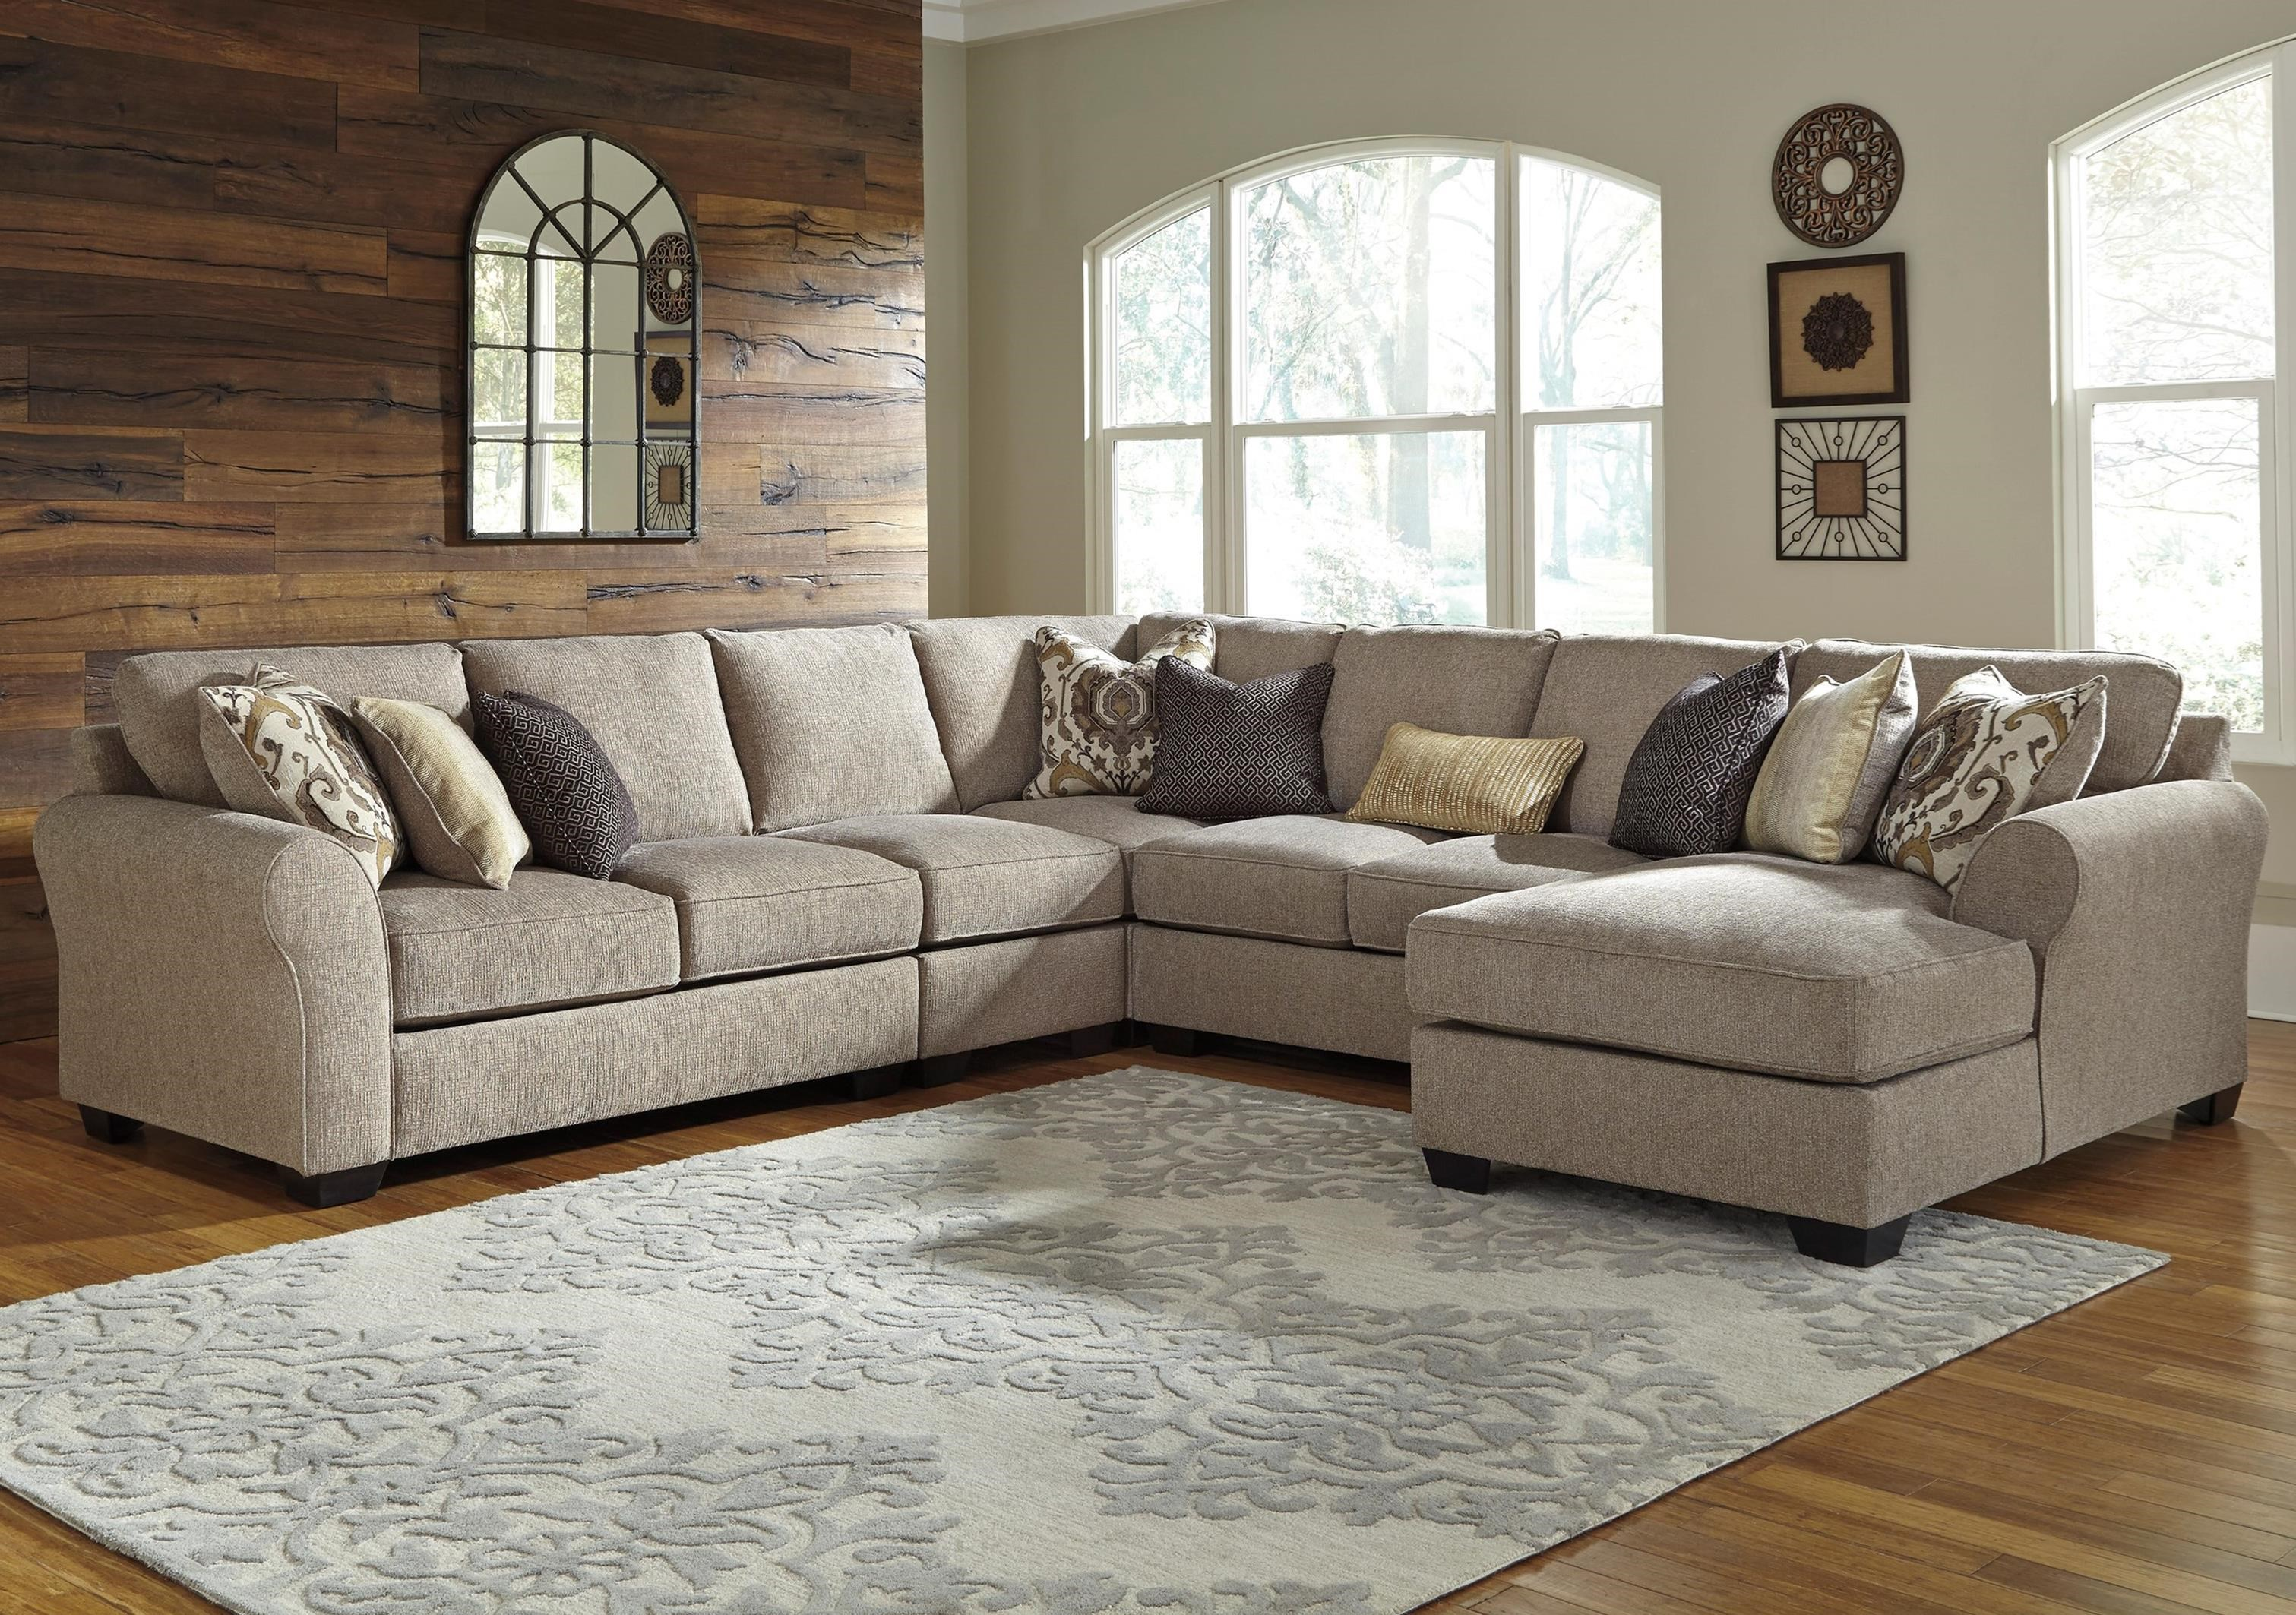 Benchcraft Pantomine 5-Piece Sectional with Right Chaise - Item Number: 3910255+46+77+34+17